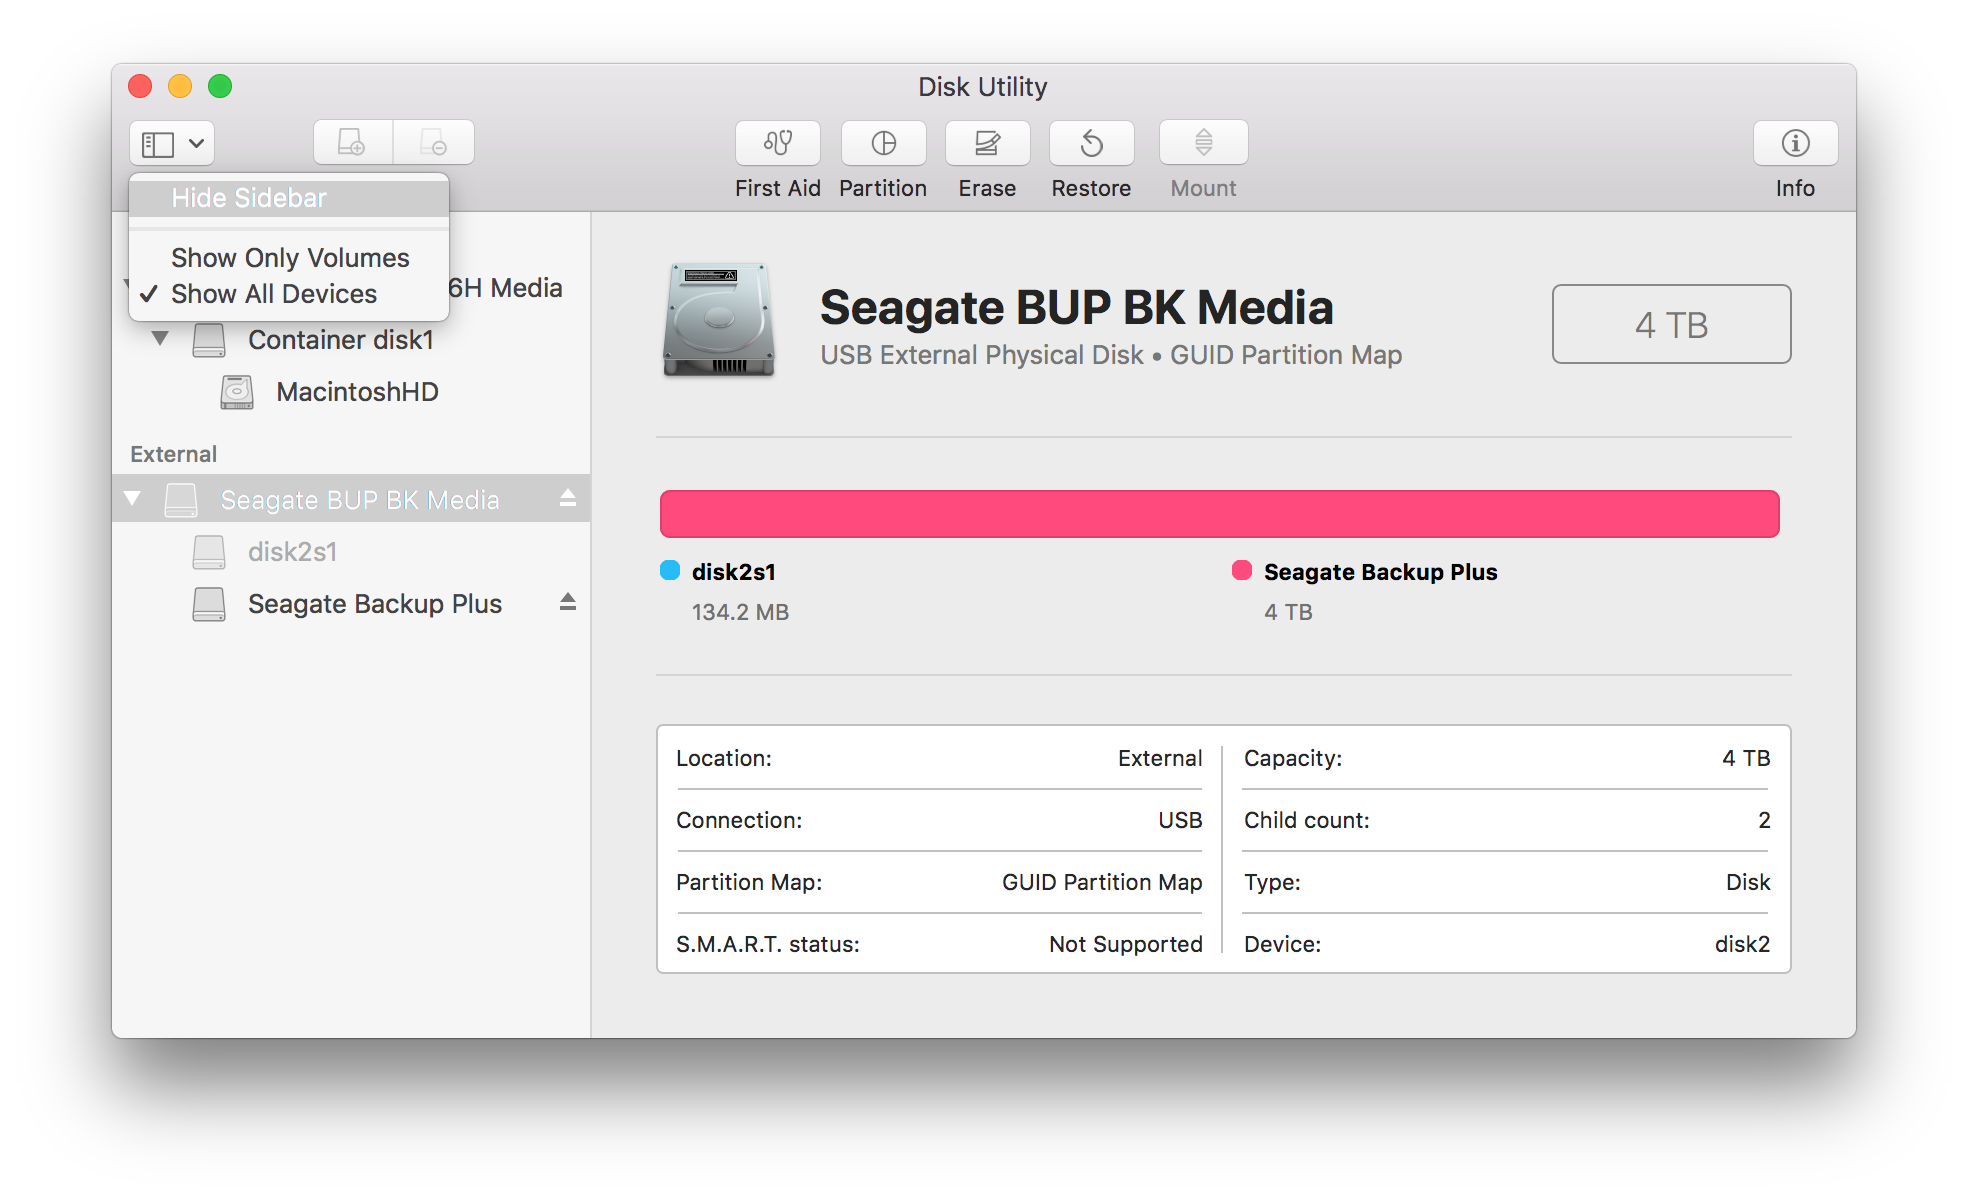 Disk Utility Errors And Questions For Macos 10 11 Higher